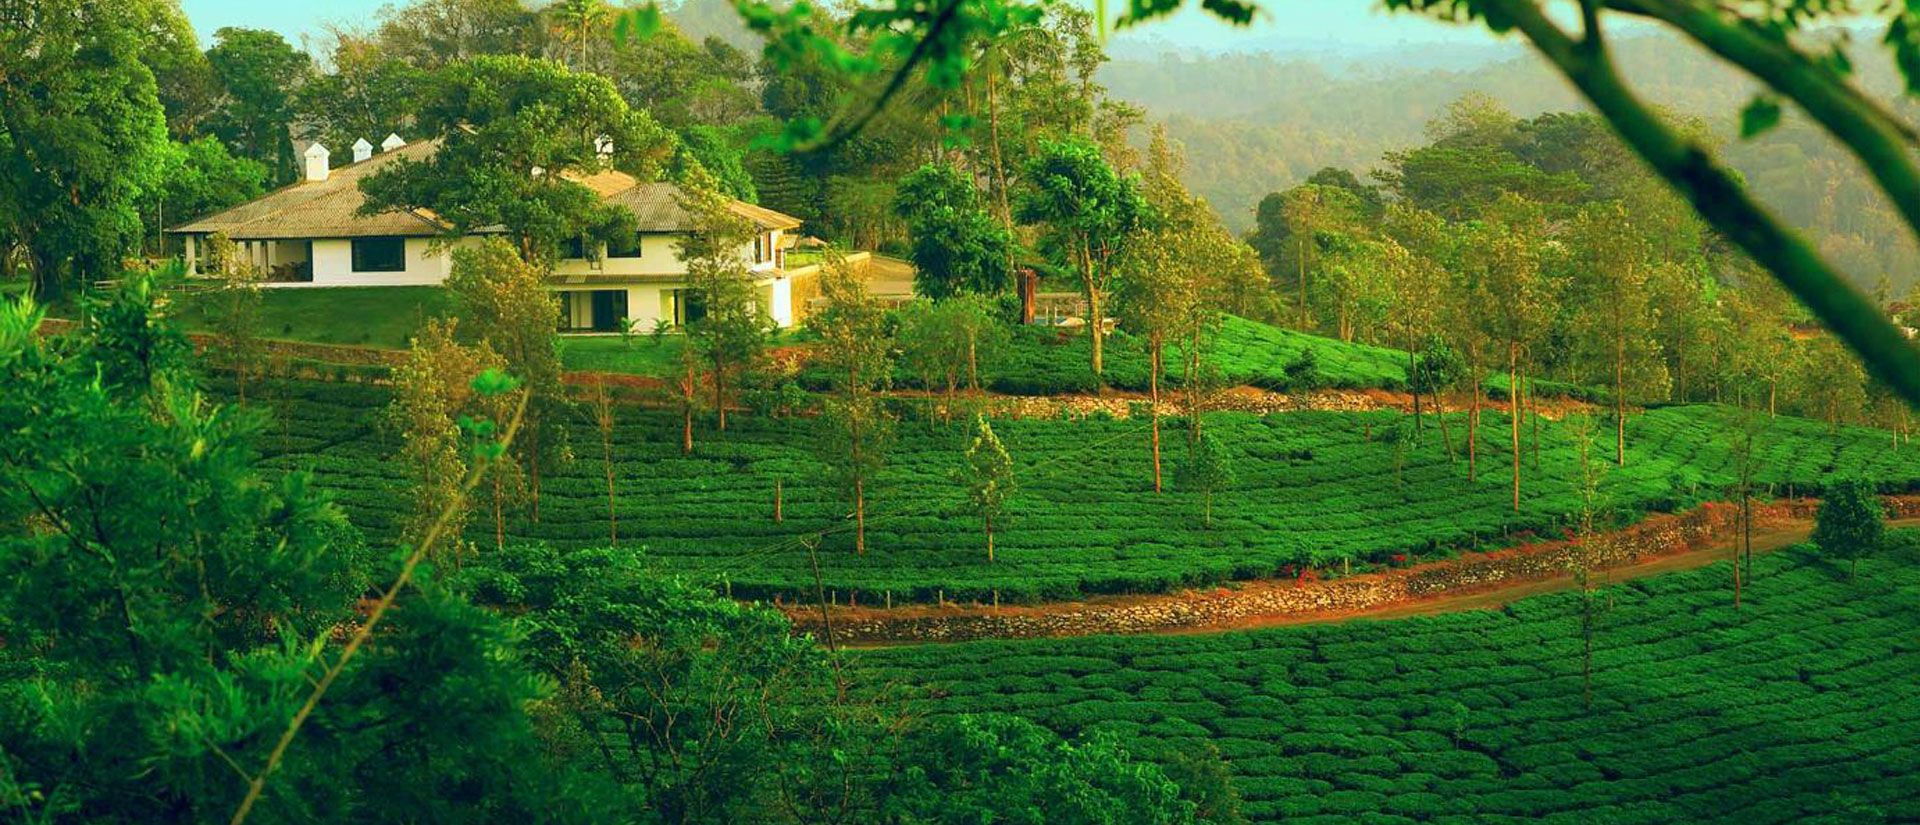 Image Result For Farm House Kerala